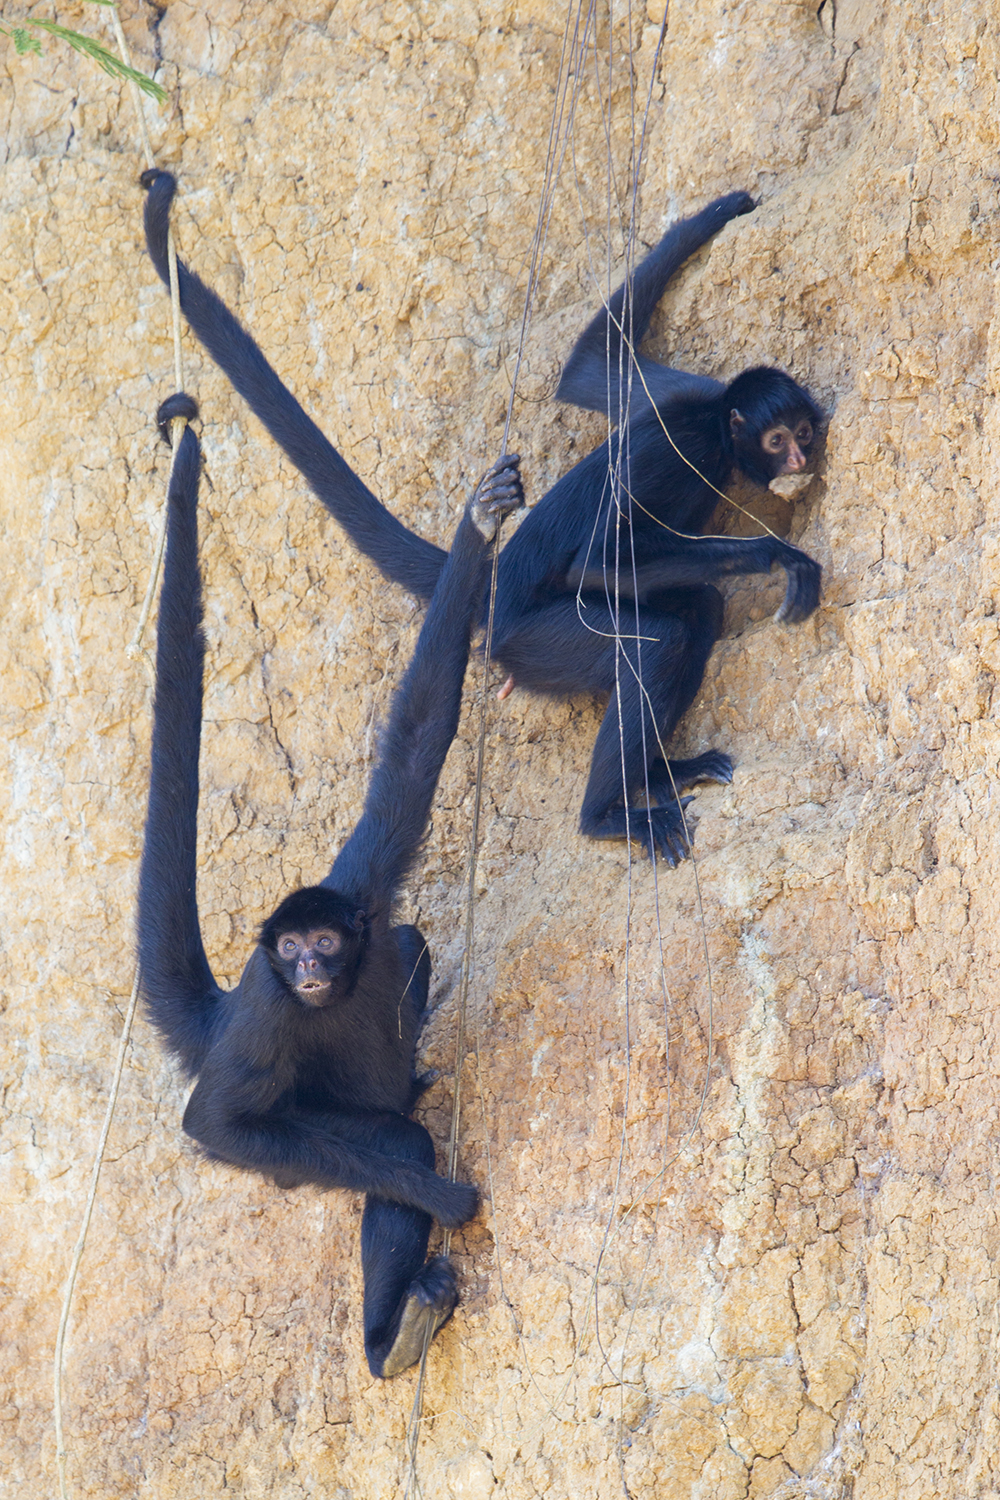 Black Spider Monkey6051